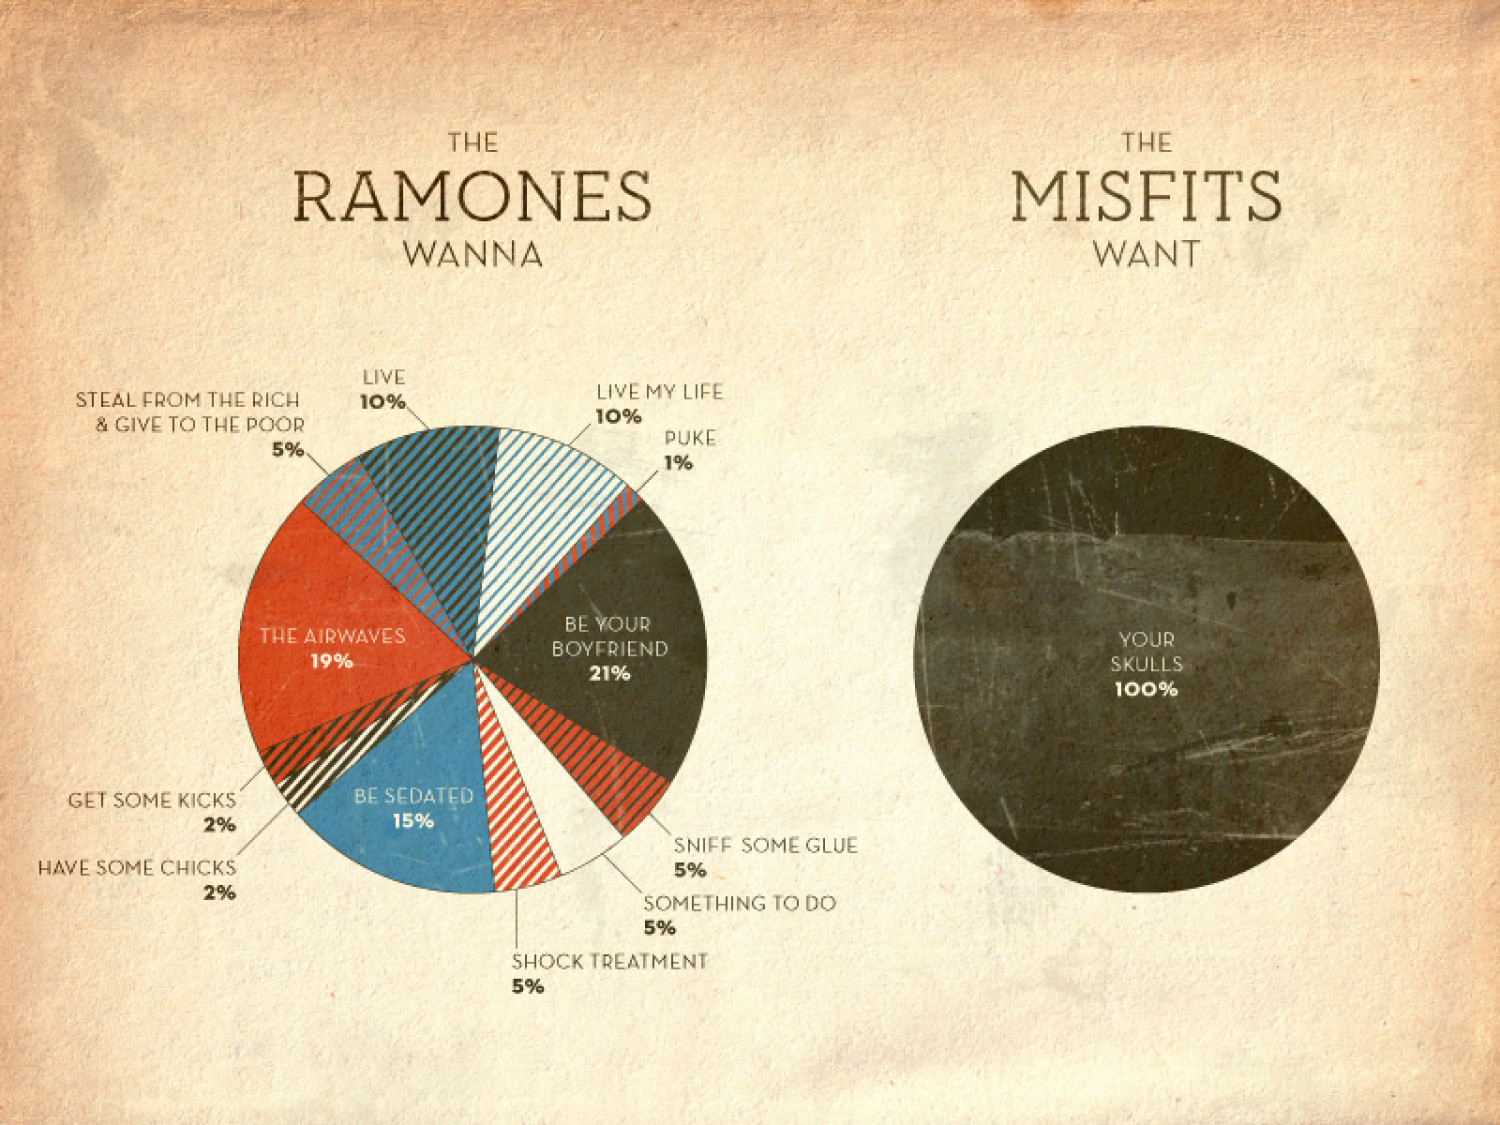 The Ramones vs The Misfits Infographic